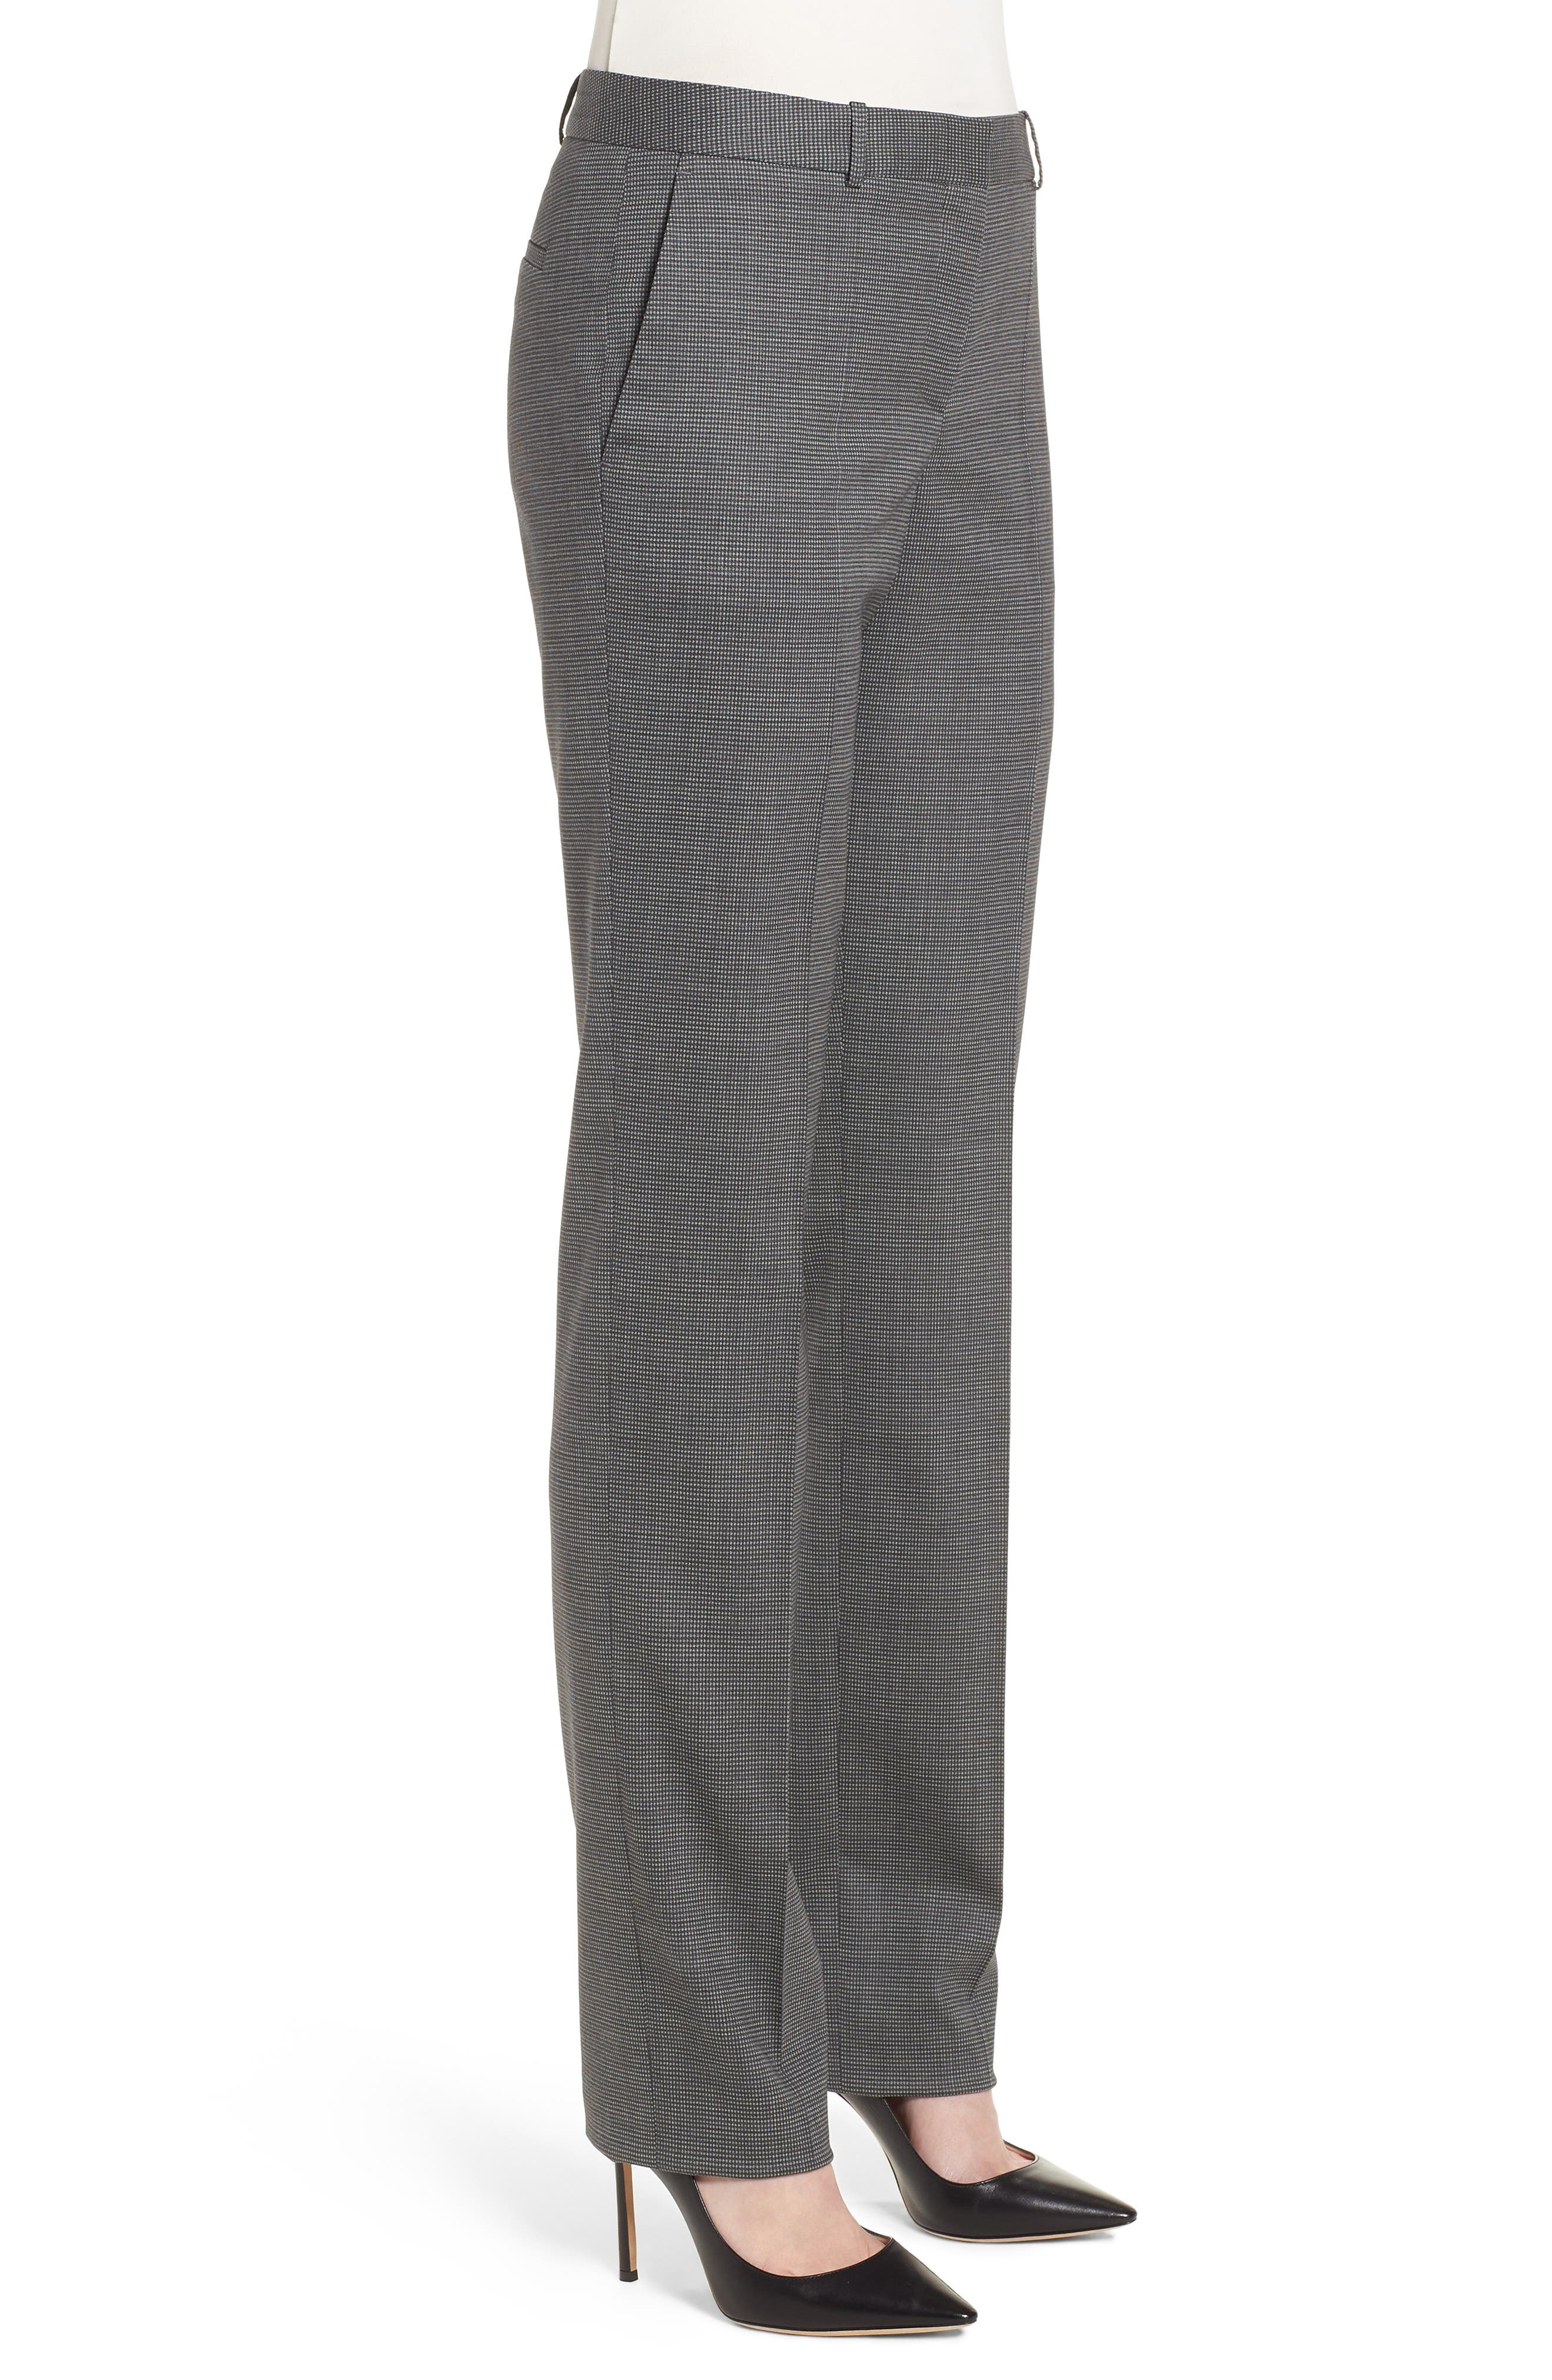 Tamea Minidessin Trousers,                             Alternate thumbnail 3, color,                             Cozy Grey Fantasy